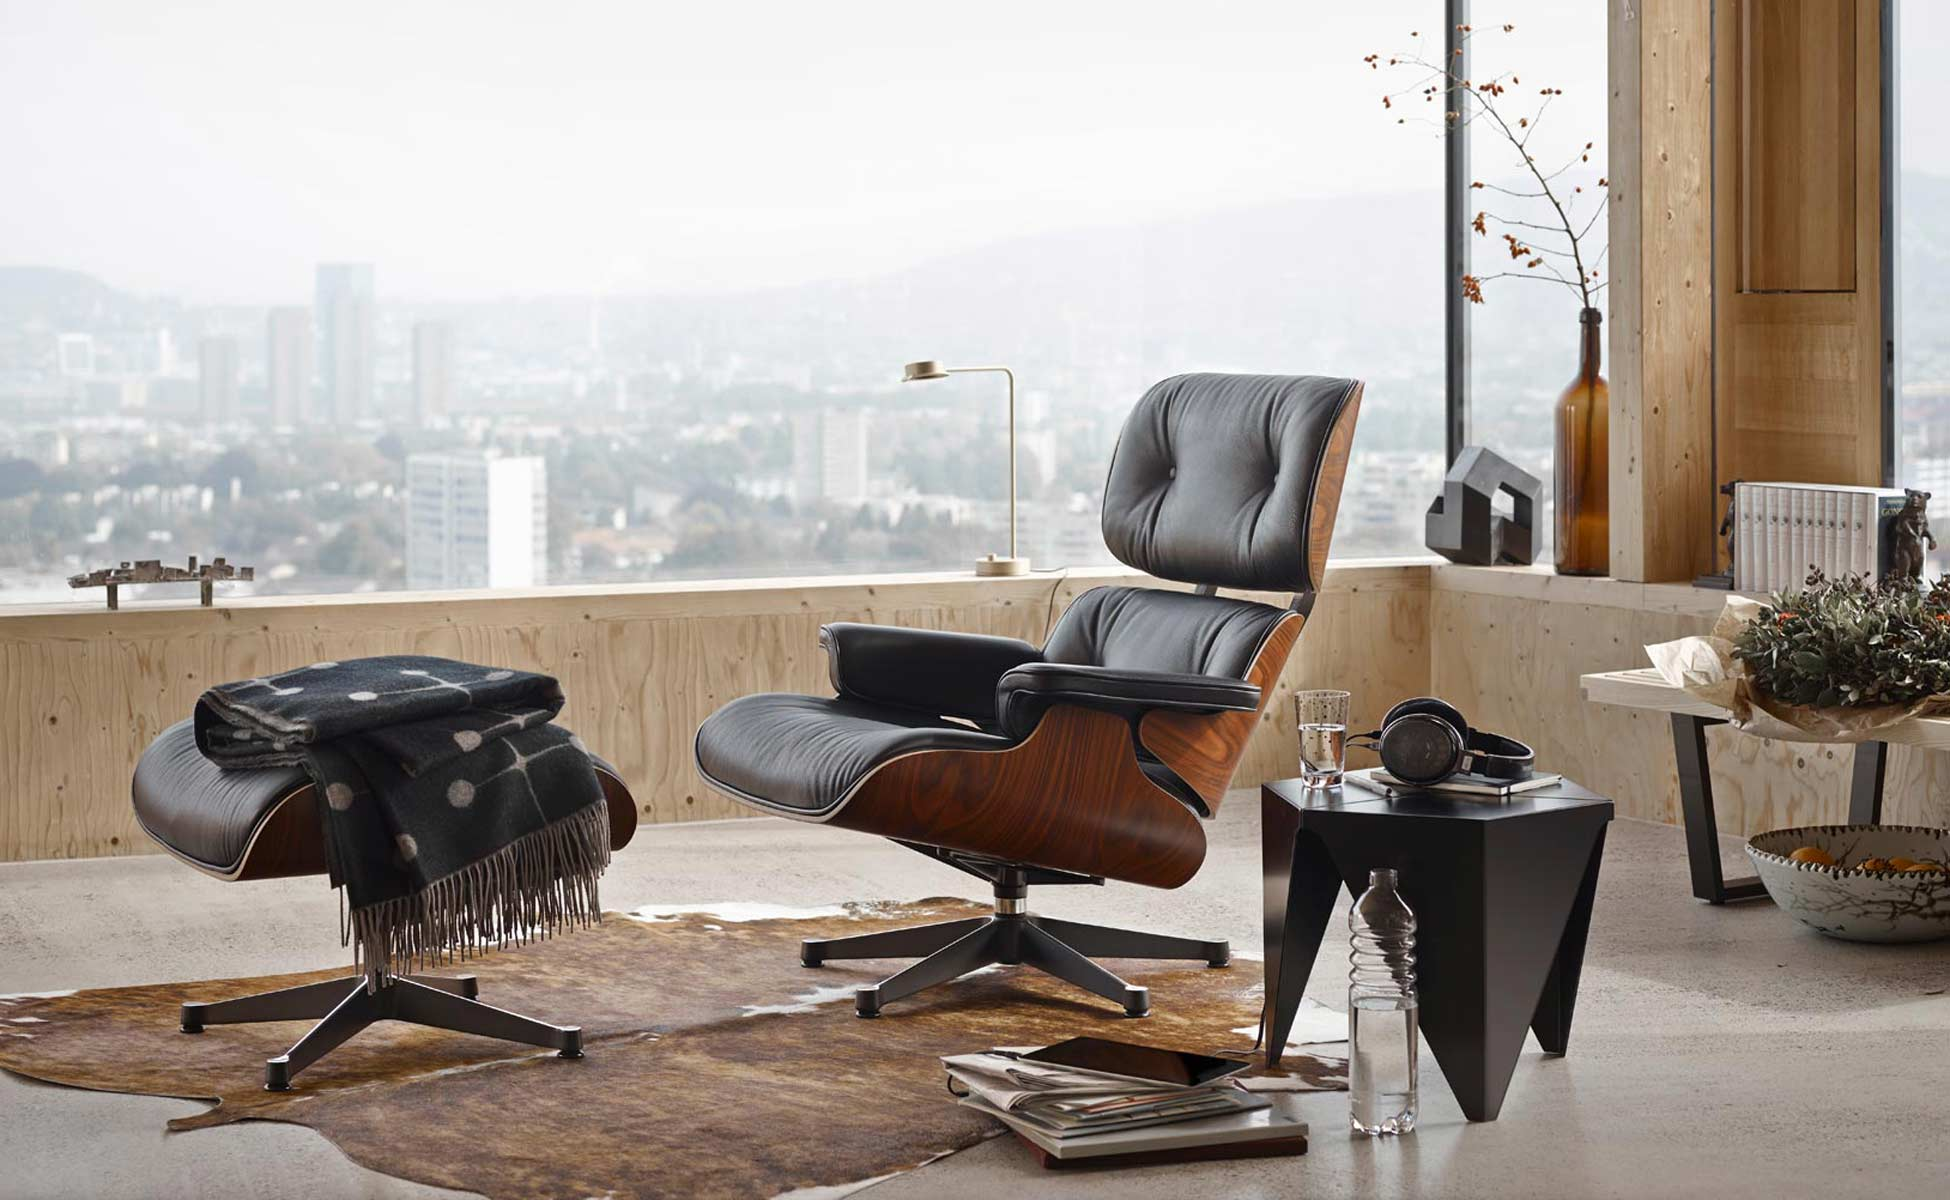 Vitra Eames Lounge Chair in Berlin bei steidten+